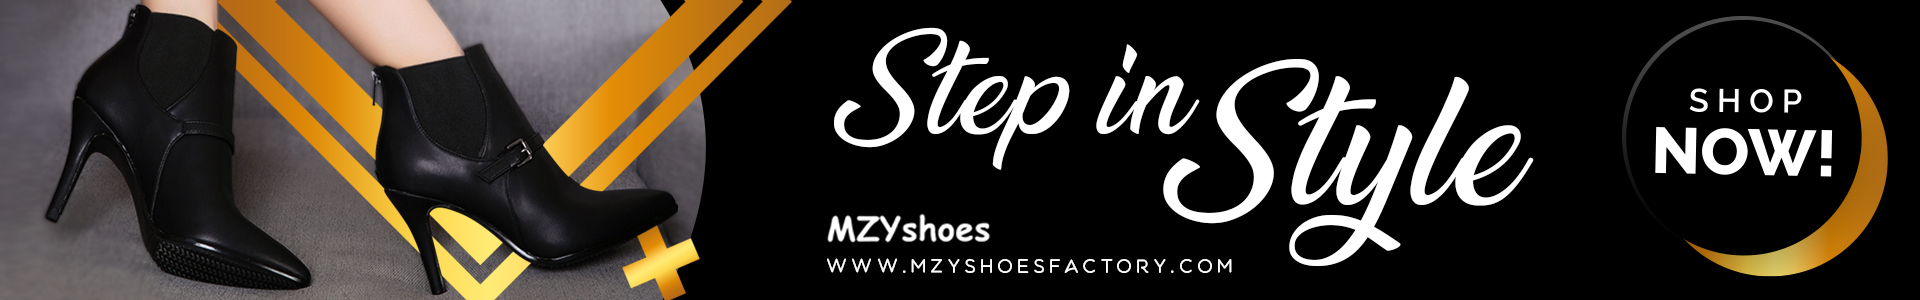 MZY Shoe Facotry